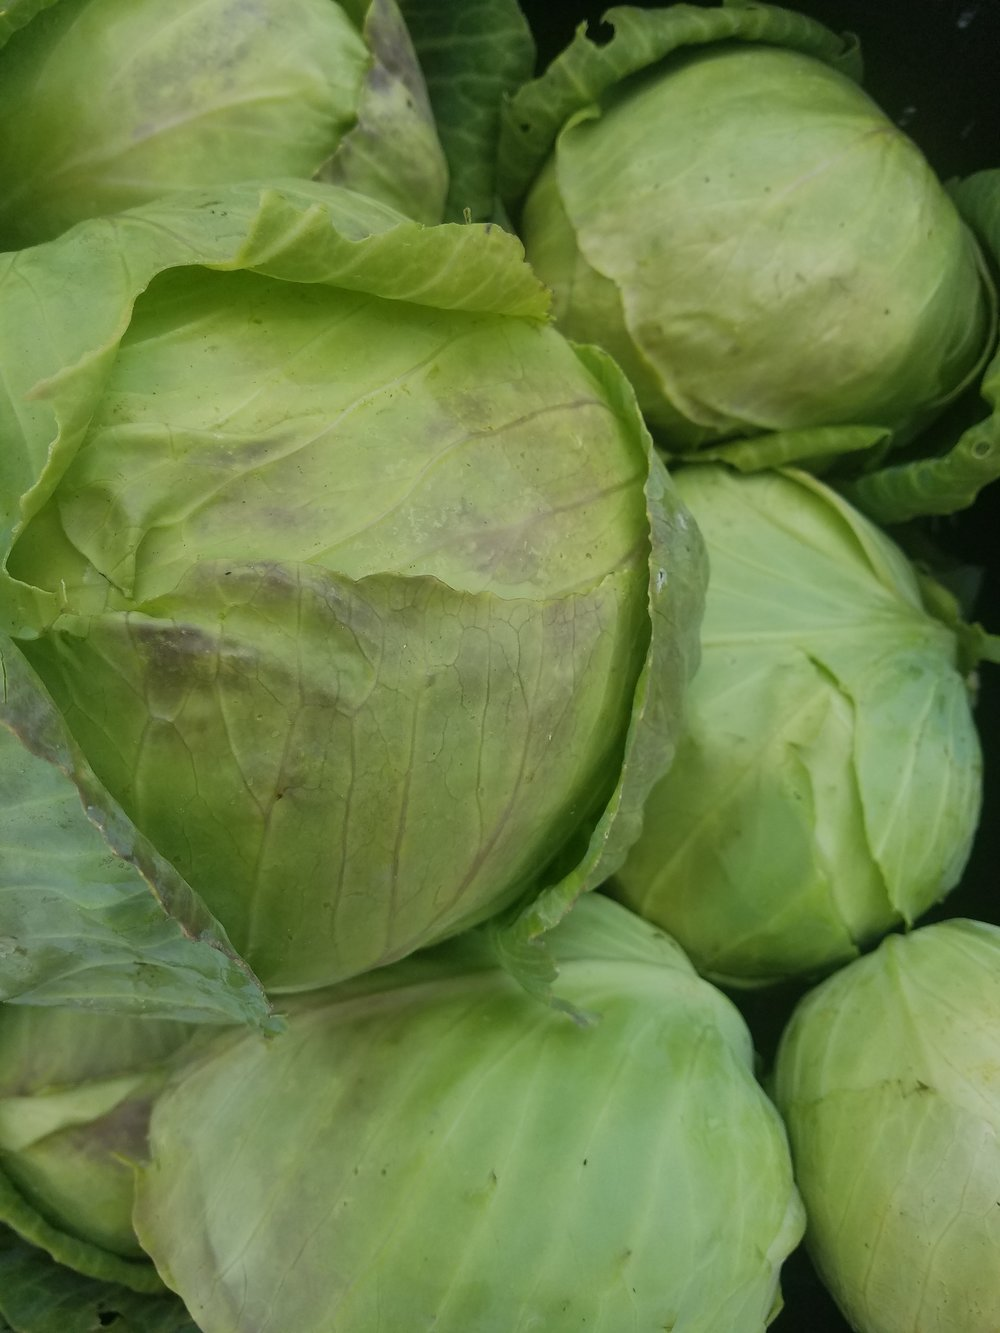 Cabbage - These dense heads of sweet leafy greens ad a mild crunch to meals. Essential in cabbage rolls, coleslaw, and sauerkraut.